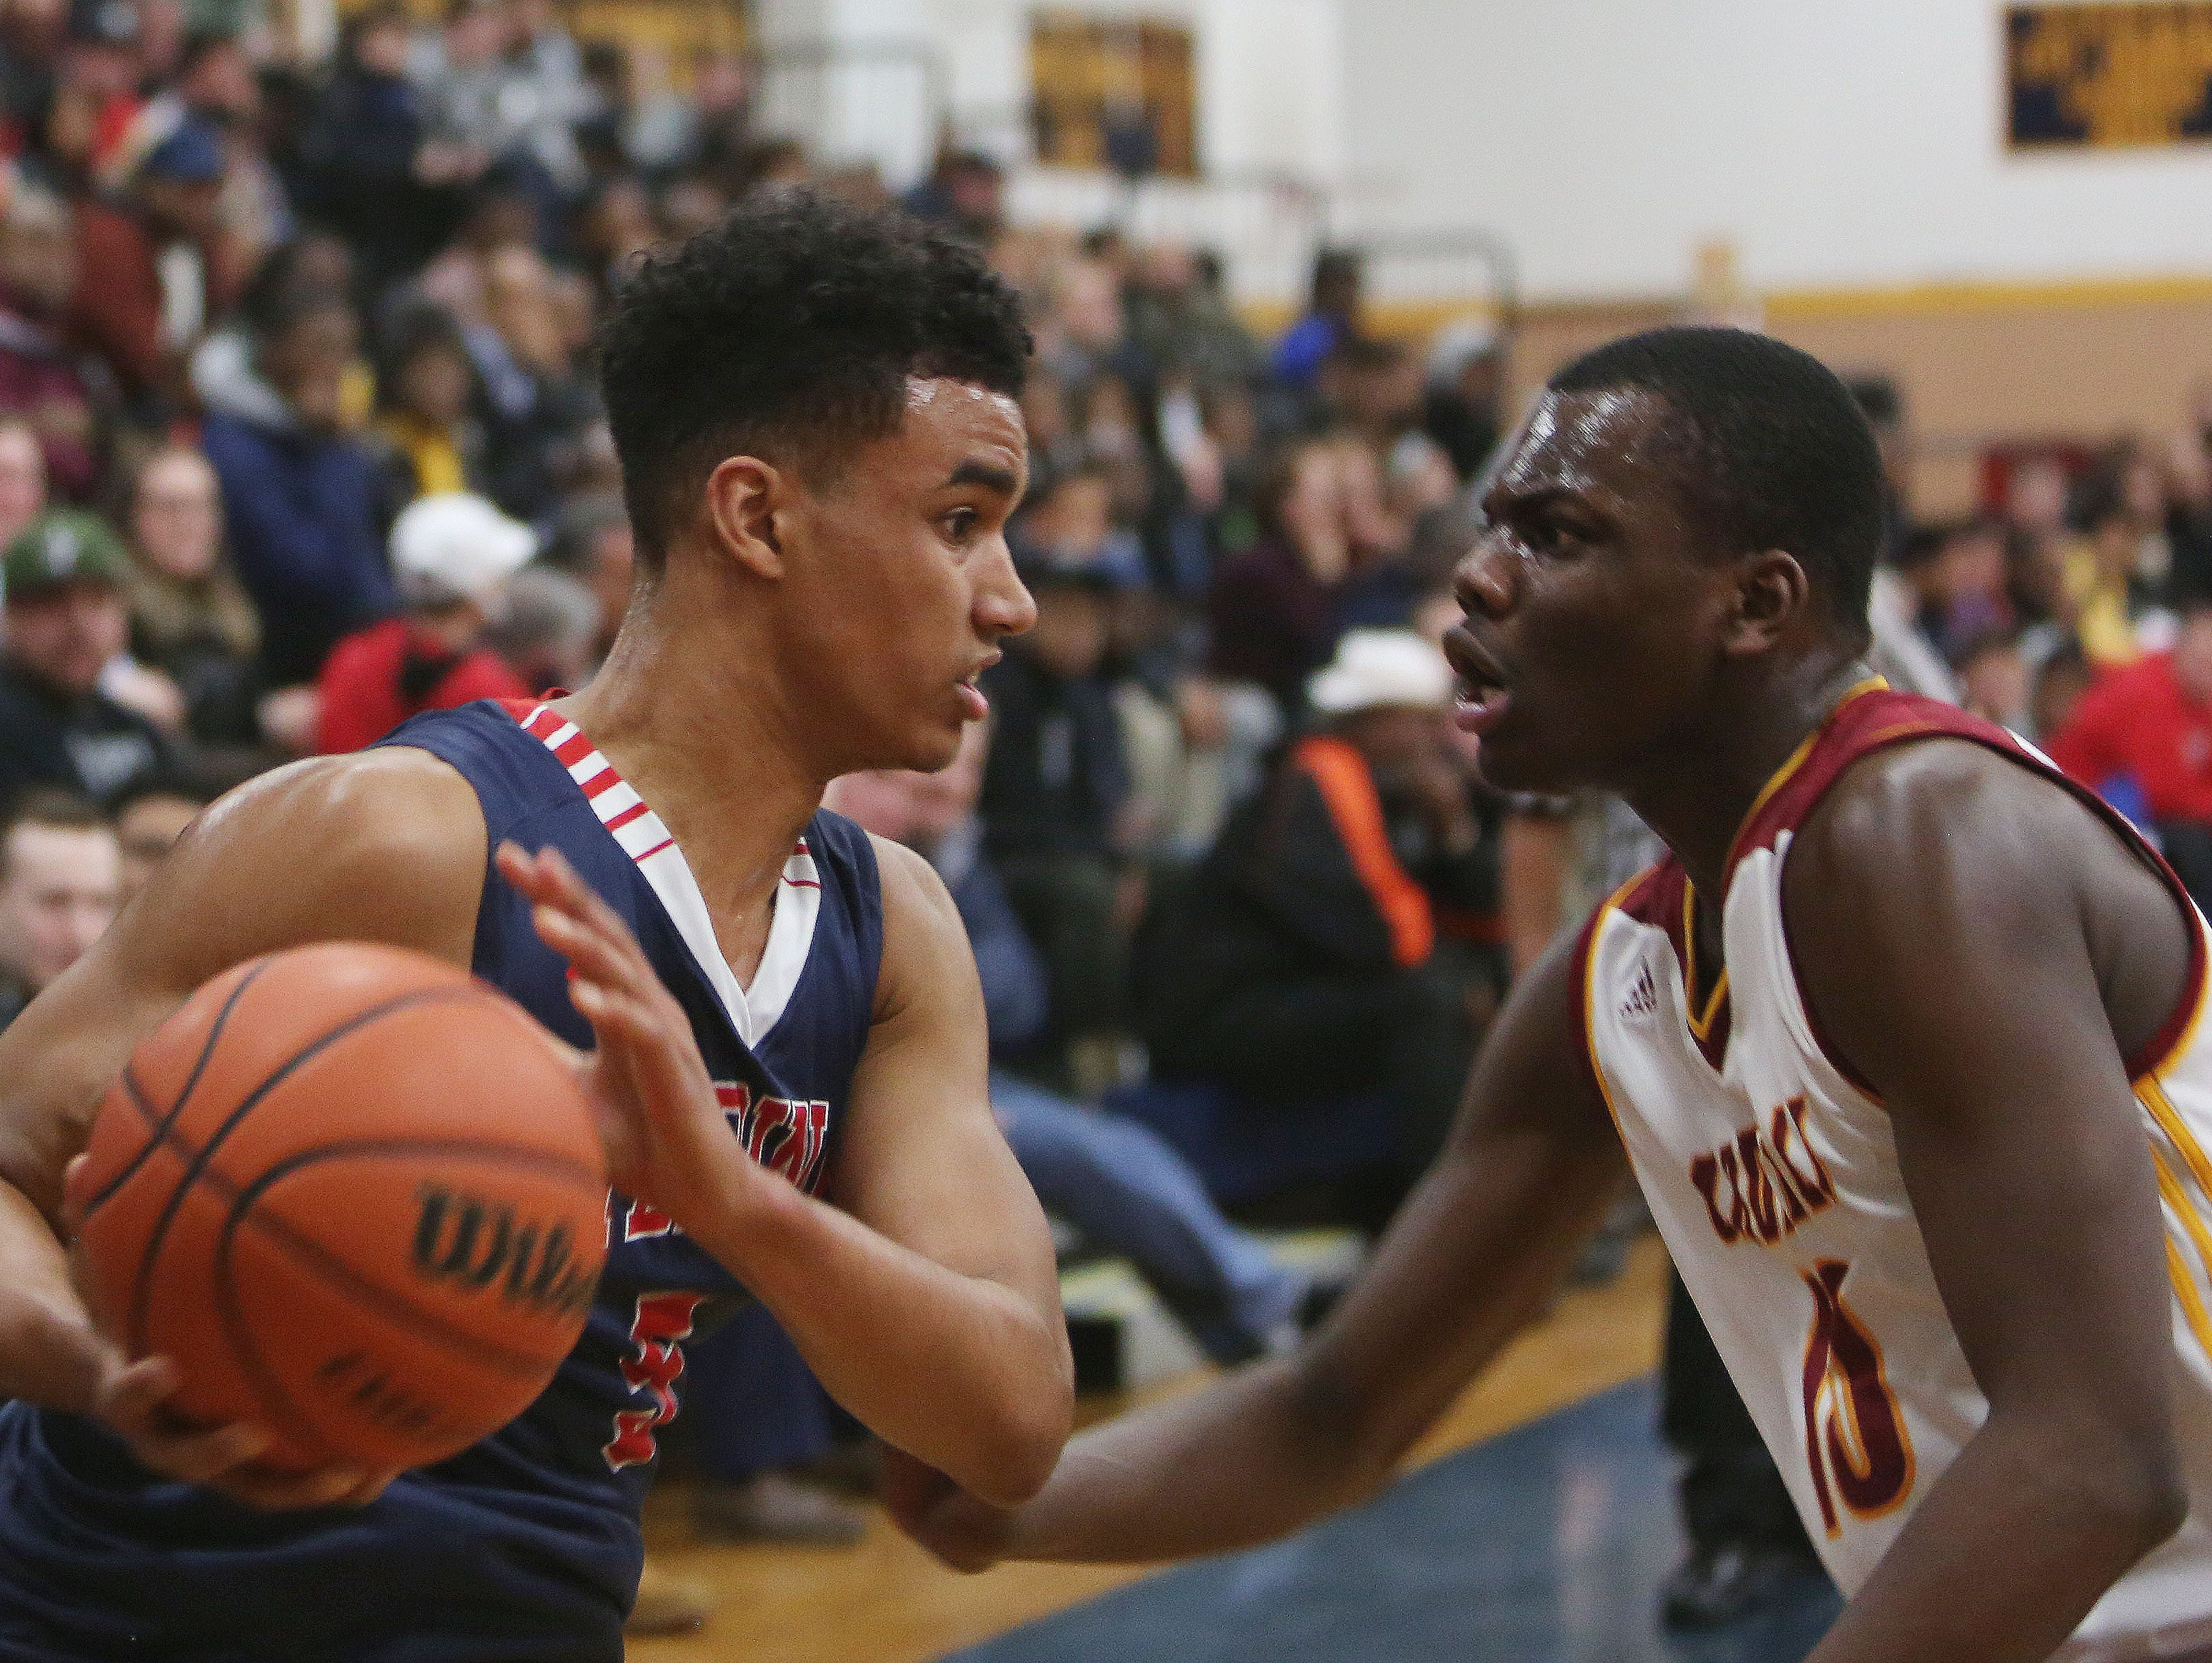 Stepinac's Jordan Tucker (5) tries to get around Cardinal Hayes' Quran Brockhouse (10) during the CHSAA Archdiocesan tournament semifinal at Mount Saint Michael Academy in the Bronx Feb. 23, 2016.